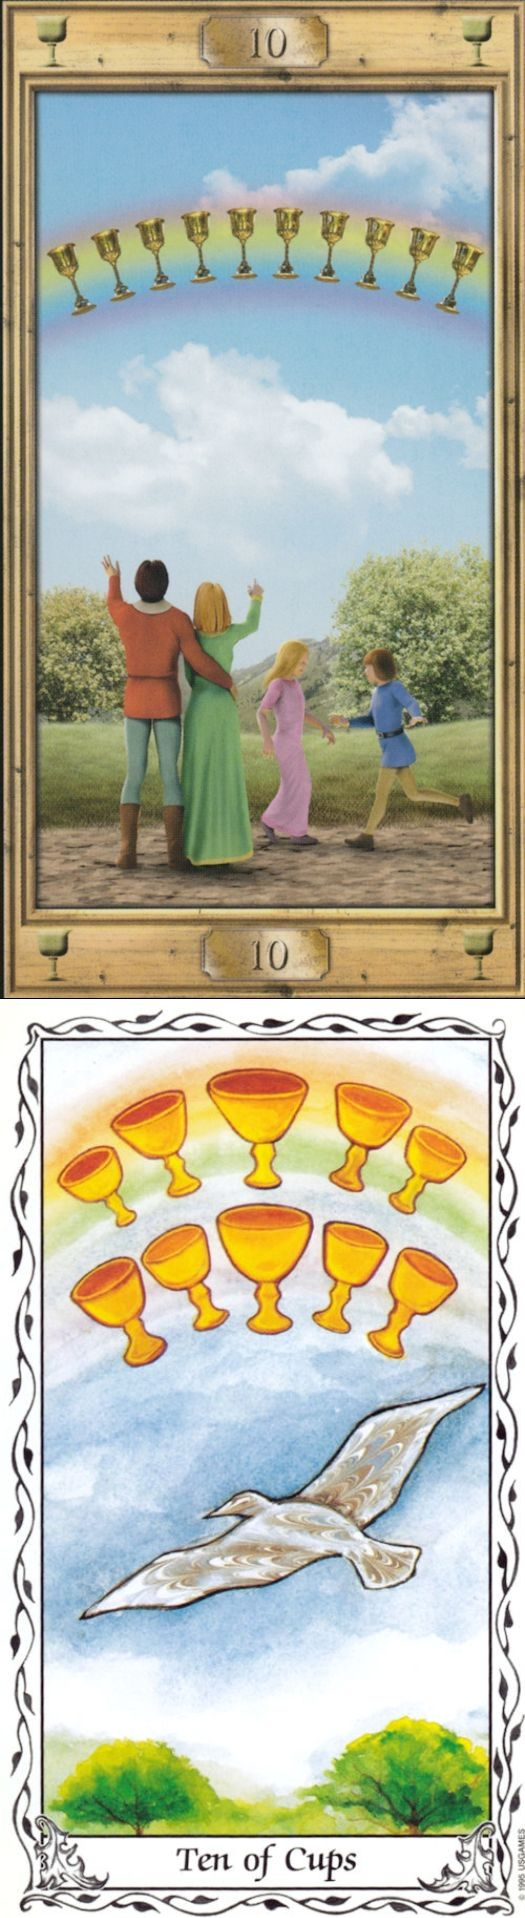 Ten of Cups: happiness and shattered dreams (reverse). Pictorial Tarot deck and Hudes Tarot deck: free tarot reading online no sign up, how to play tarot cards and one card tarot. Best 2018 spells and cartomancy decks. #divination #paganism #androidapplication #howtoreadtarotcards